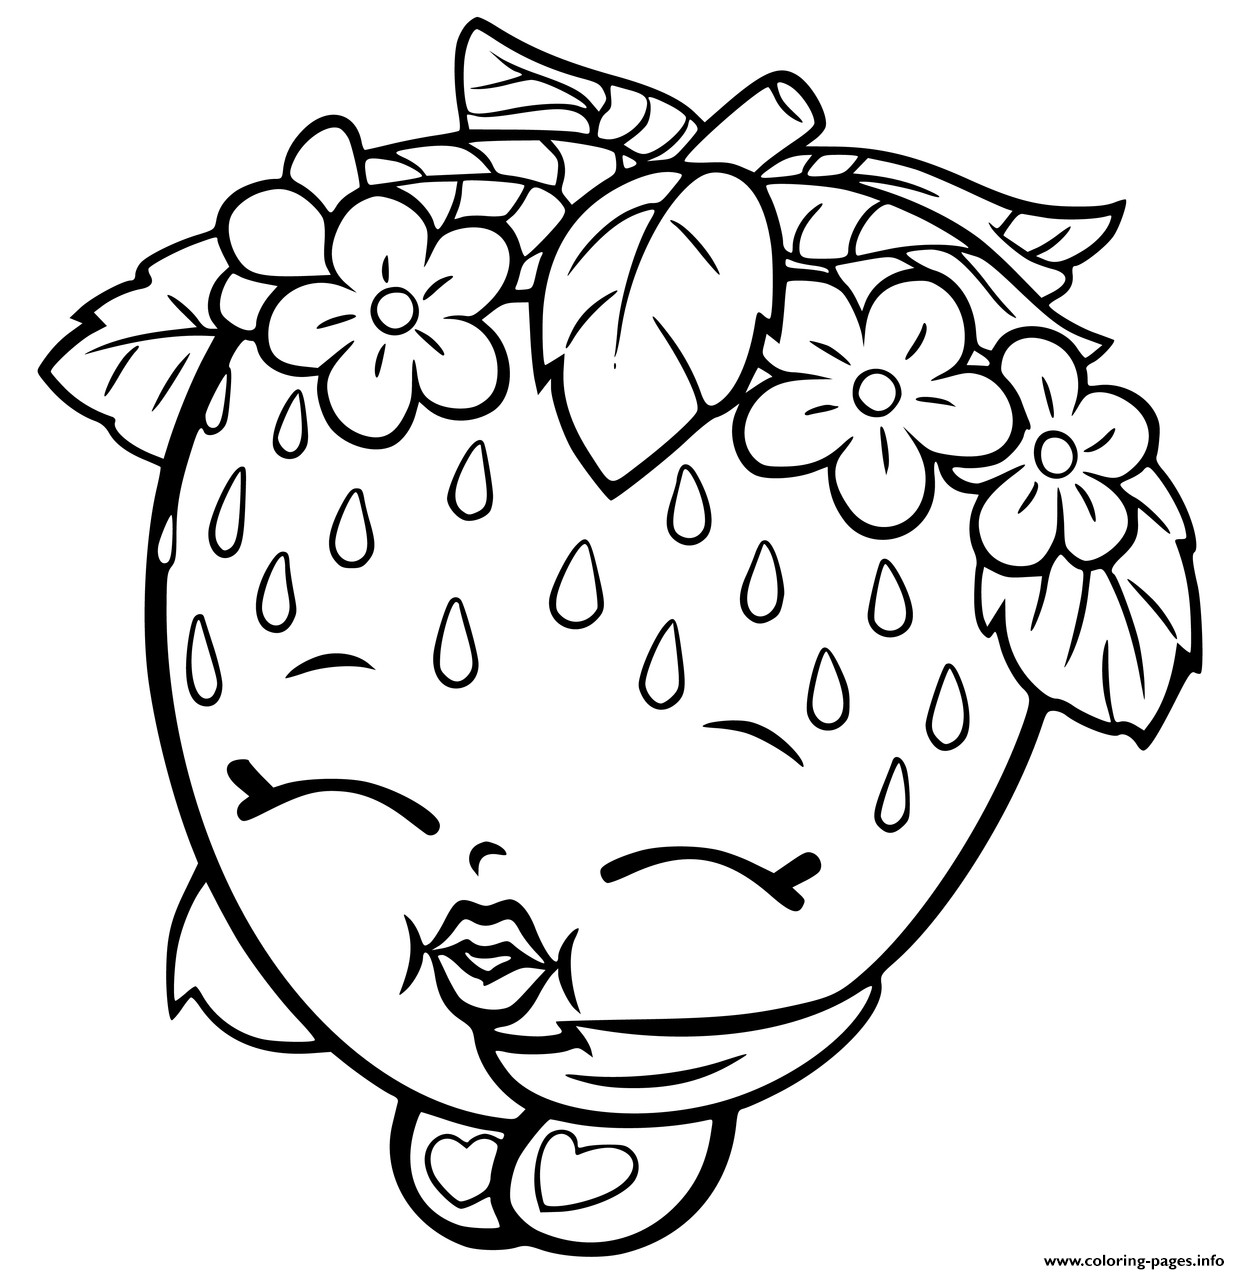 Best ideas about Coloring Pages For Girls 12 And Up . Save or Pin Coloring Pages For Girls Lds And Shopkins Free Shopkins Now.